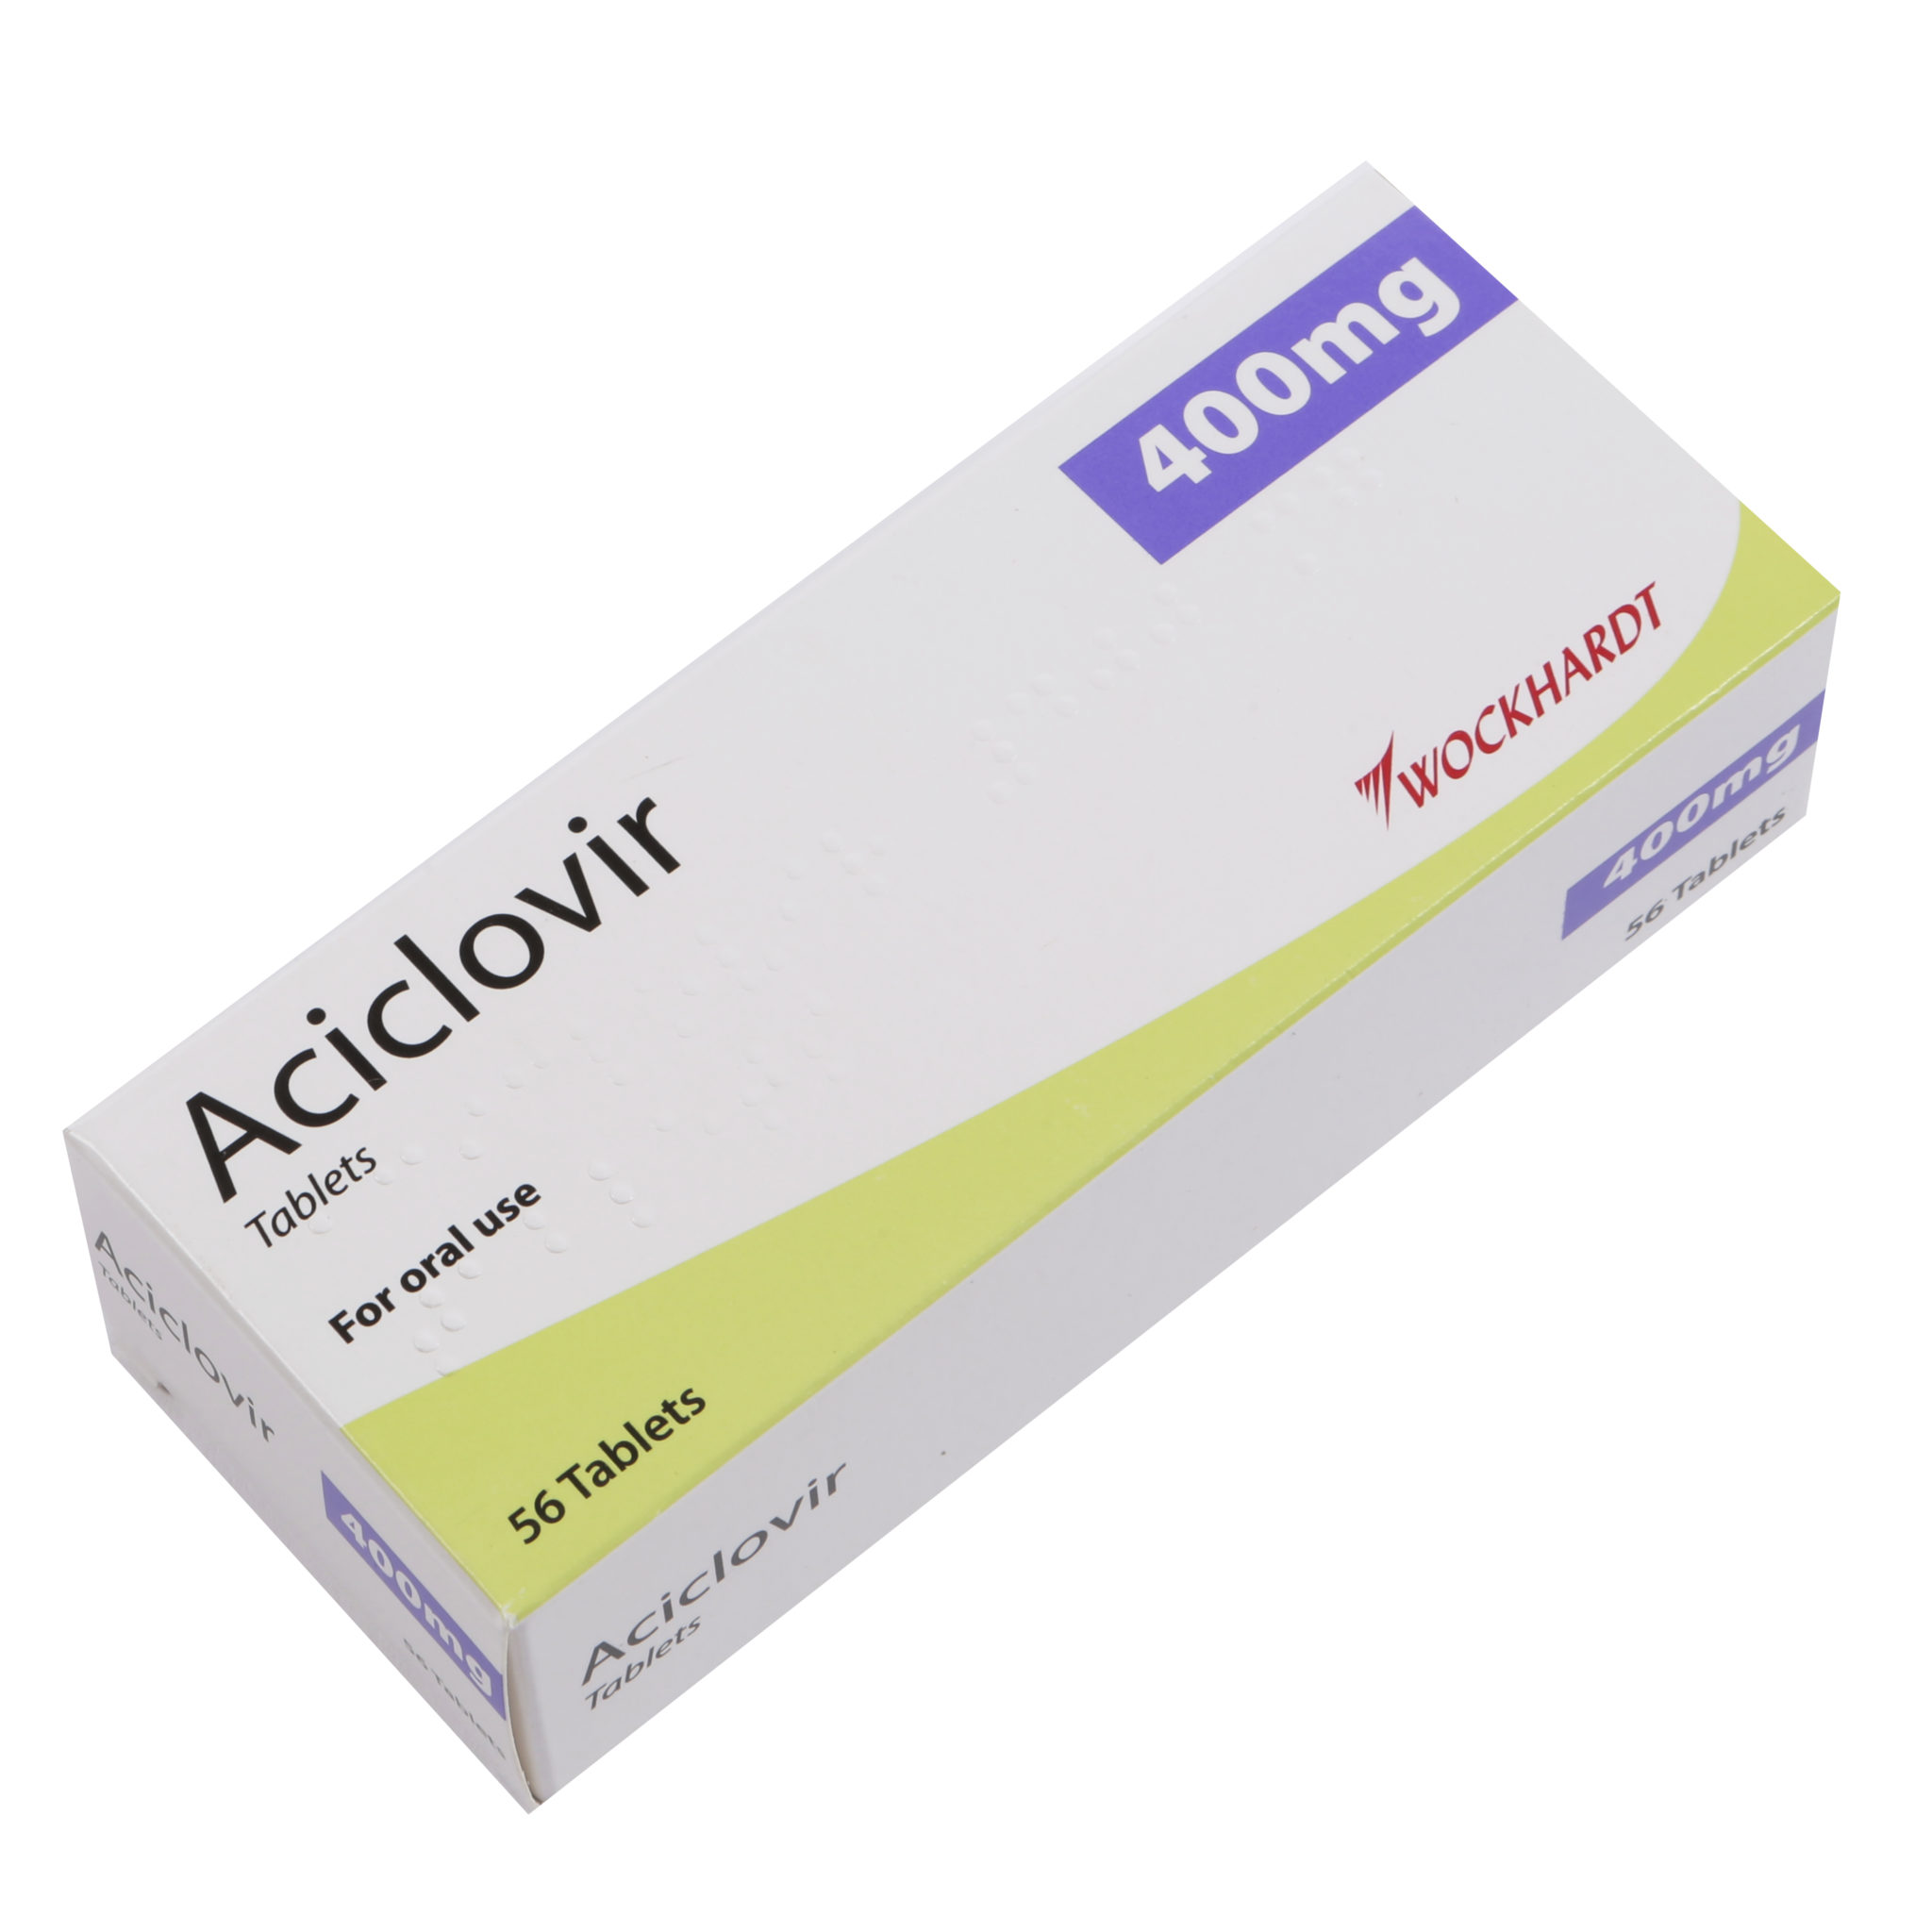 aciclovir 400mg oral tablets available at Post My Meds